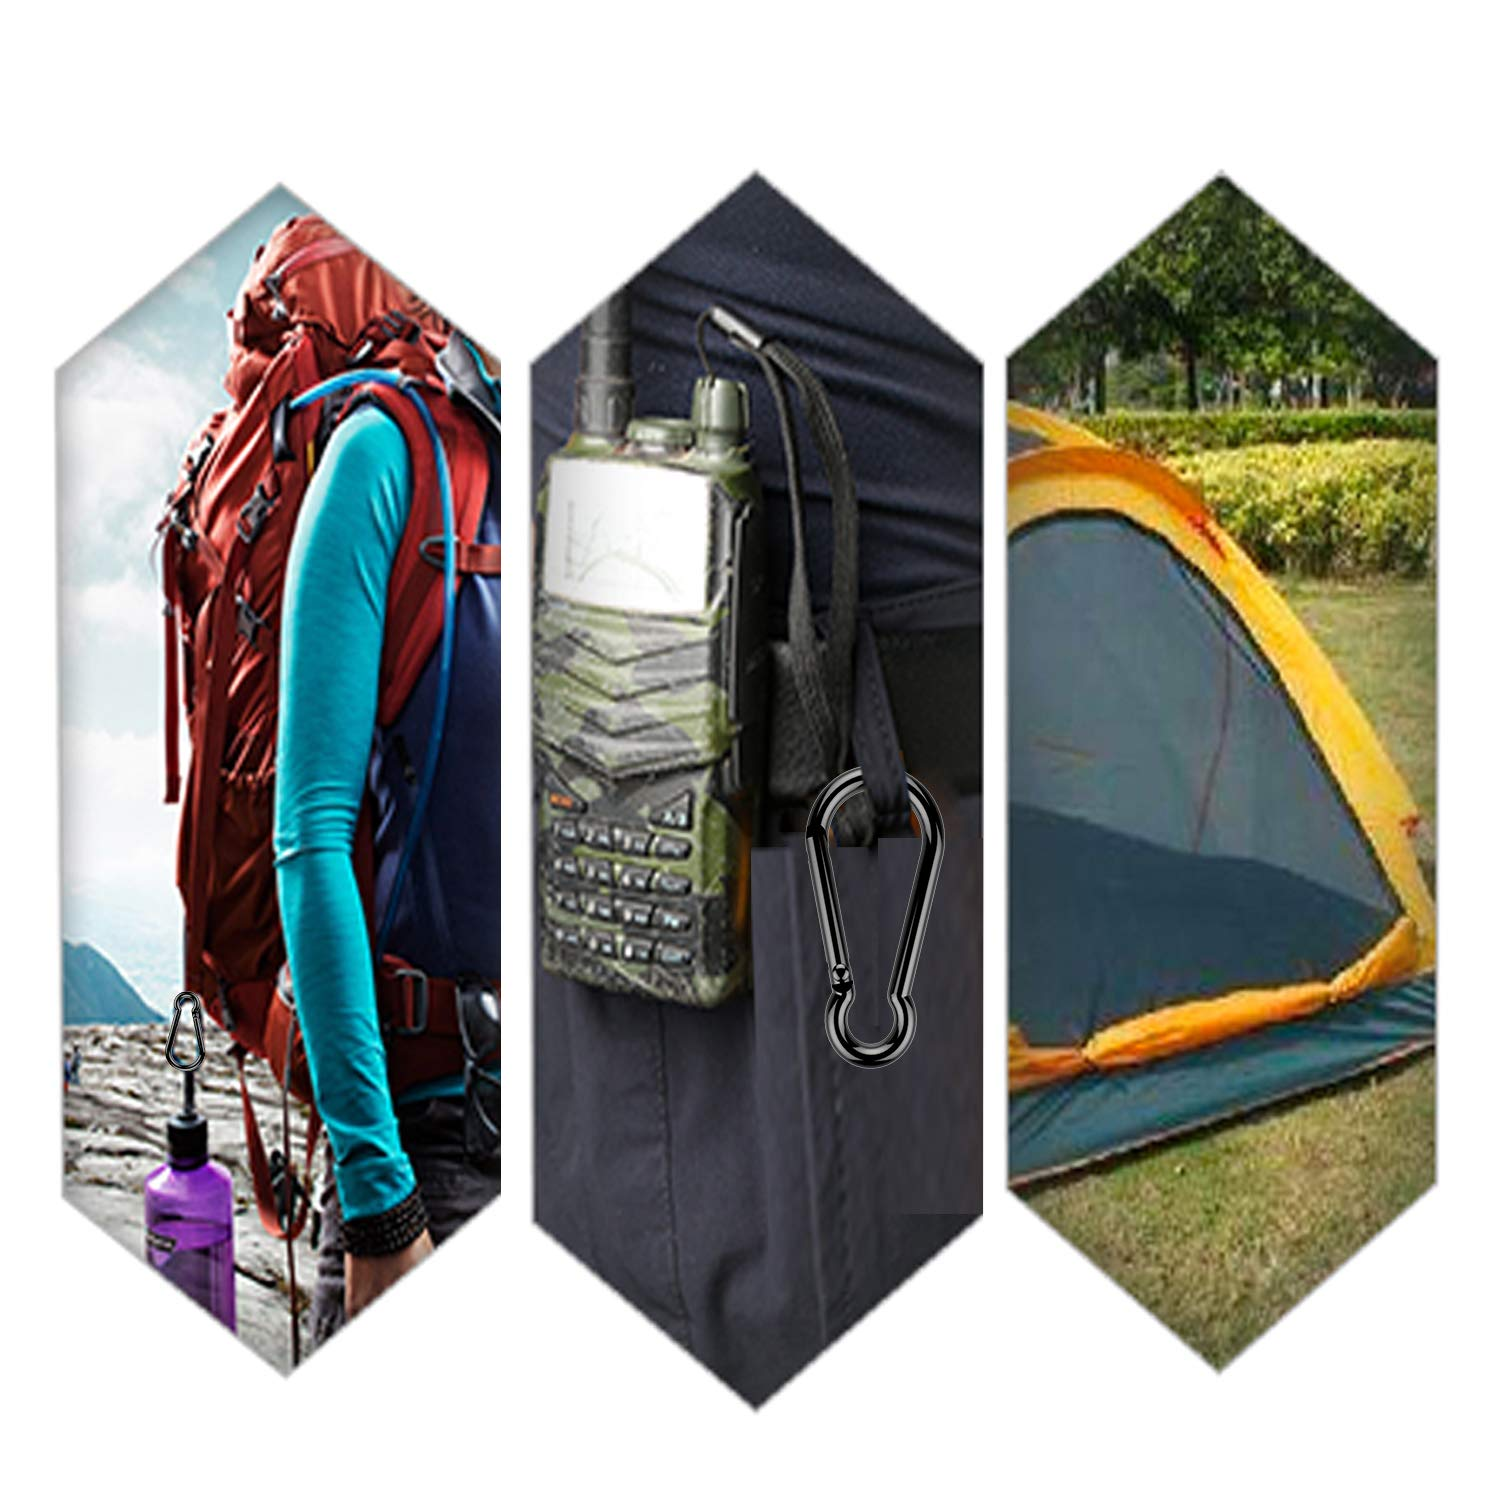 Durable Spring Snap Hook Key Chain Buckle Clips for Camping Hiking Fishing Traveling Aluminum Carabiner Clip